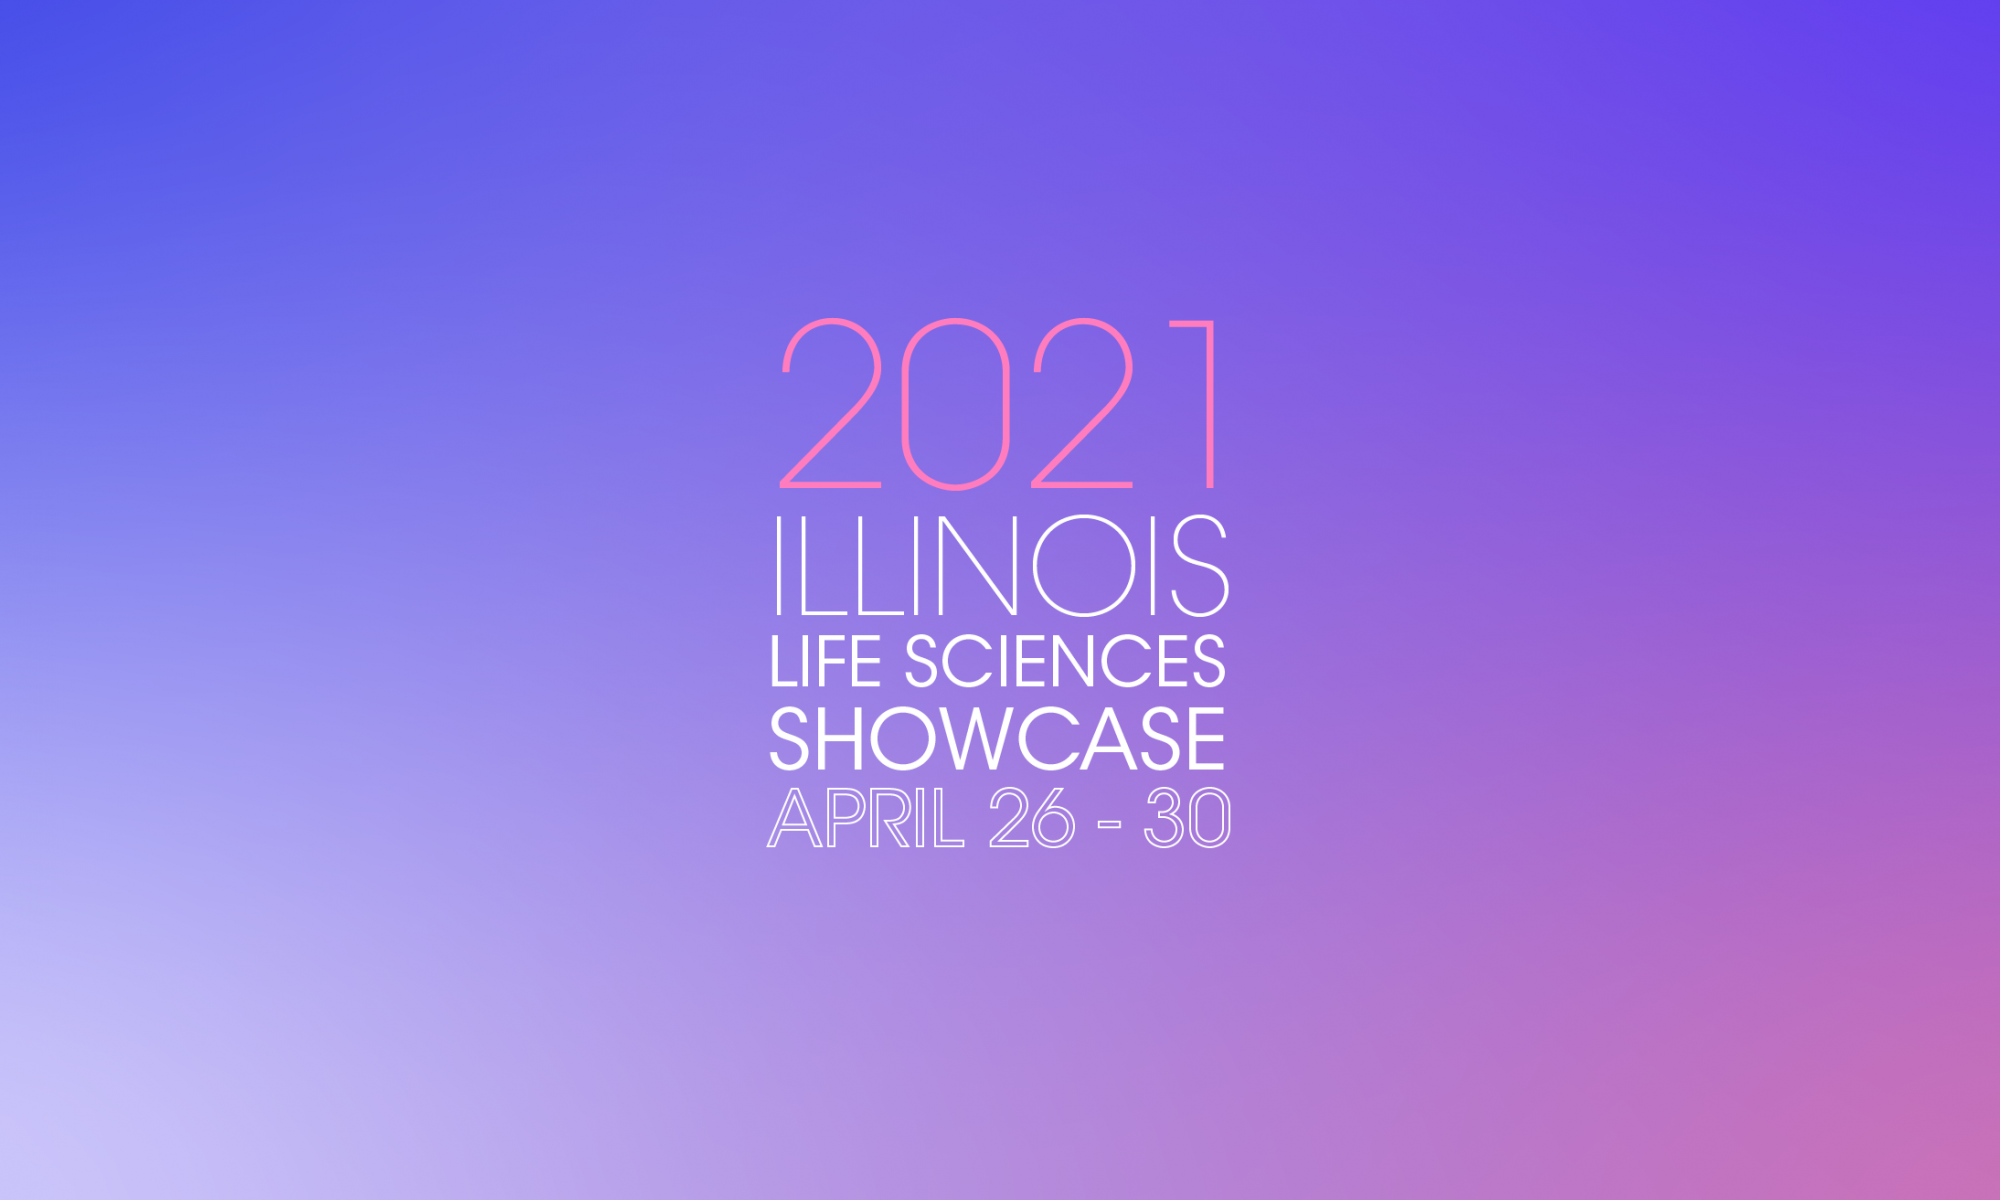 Illinois life science showcase